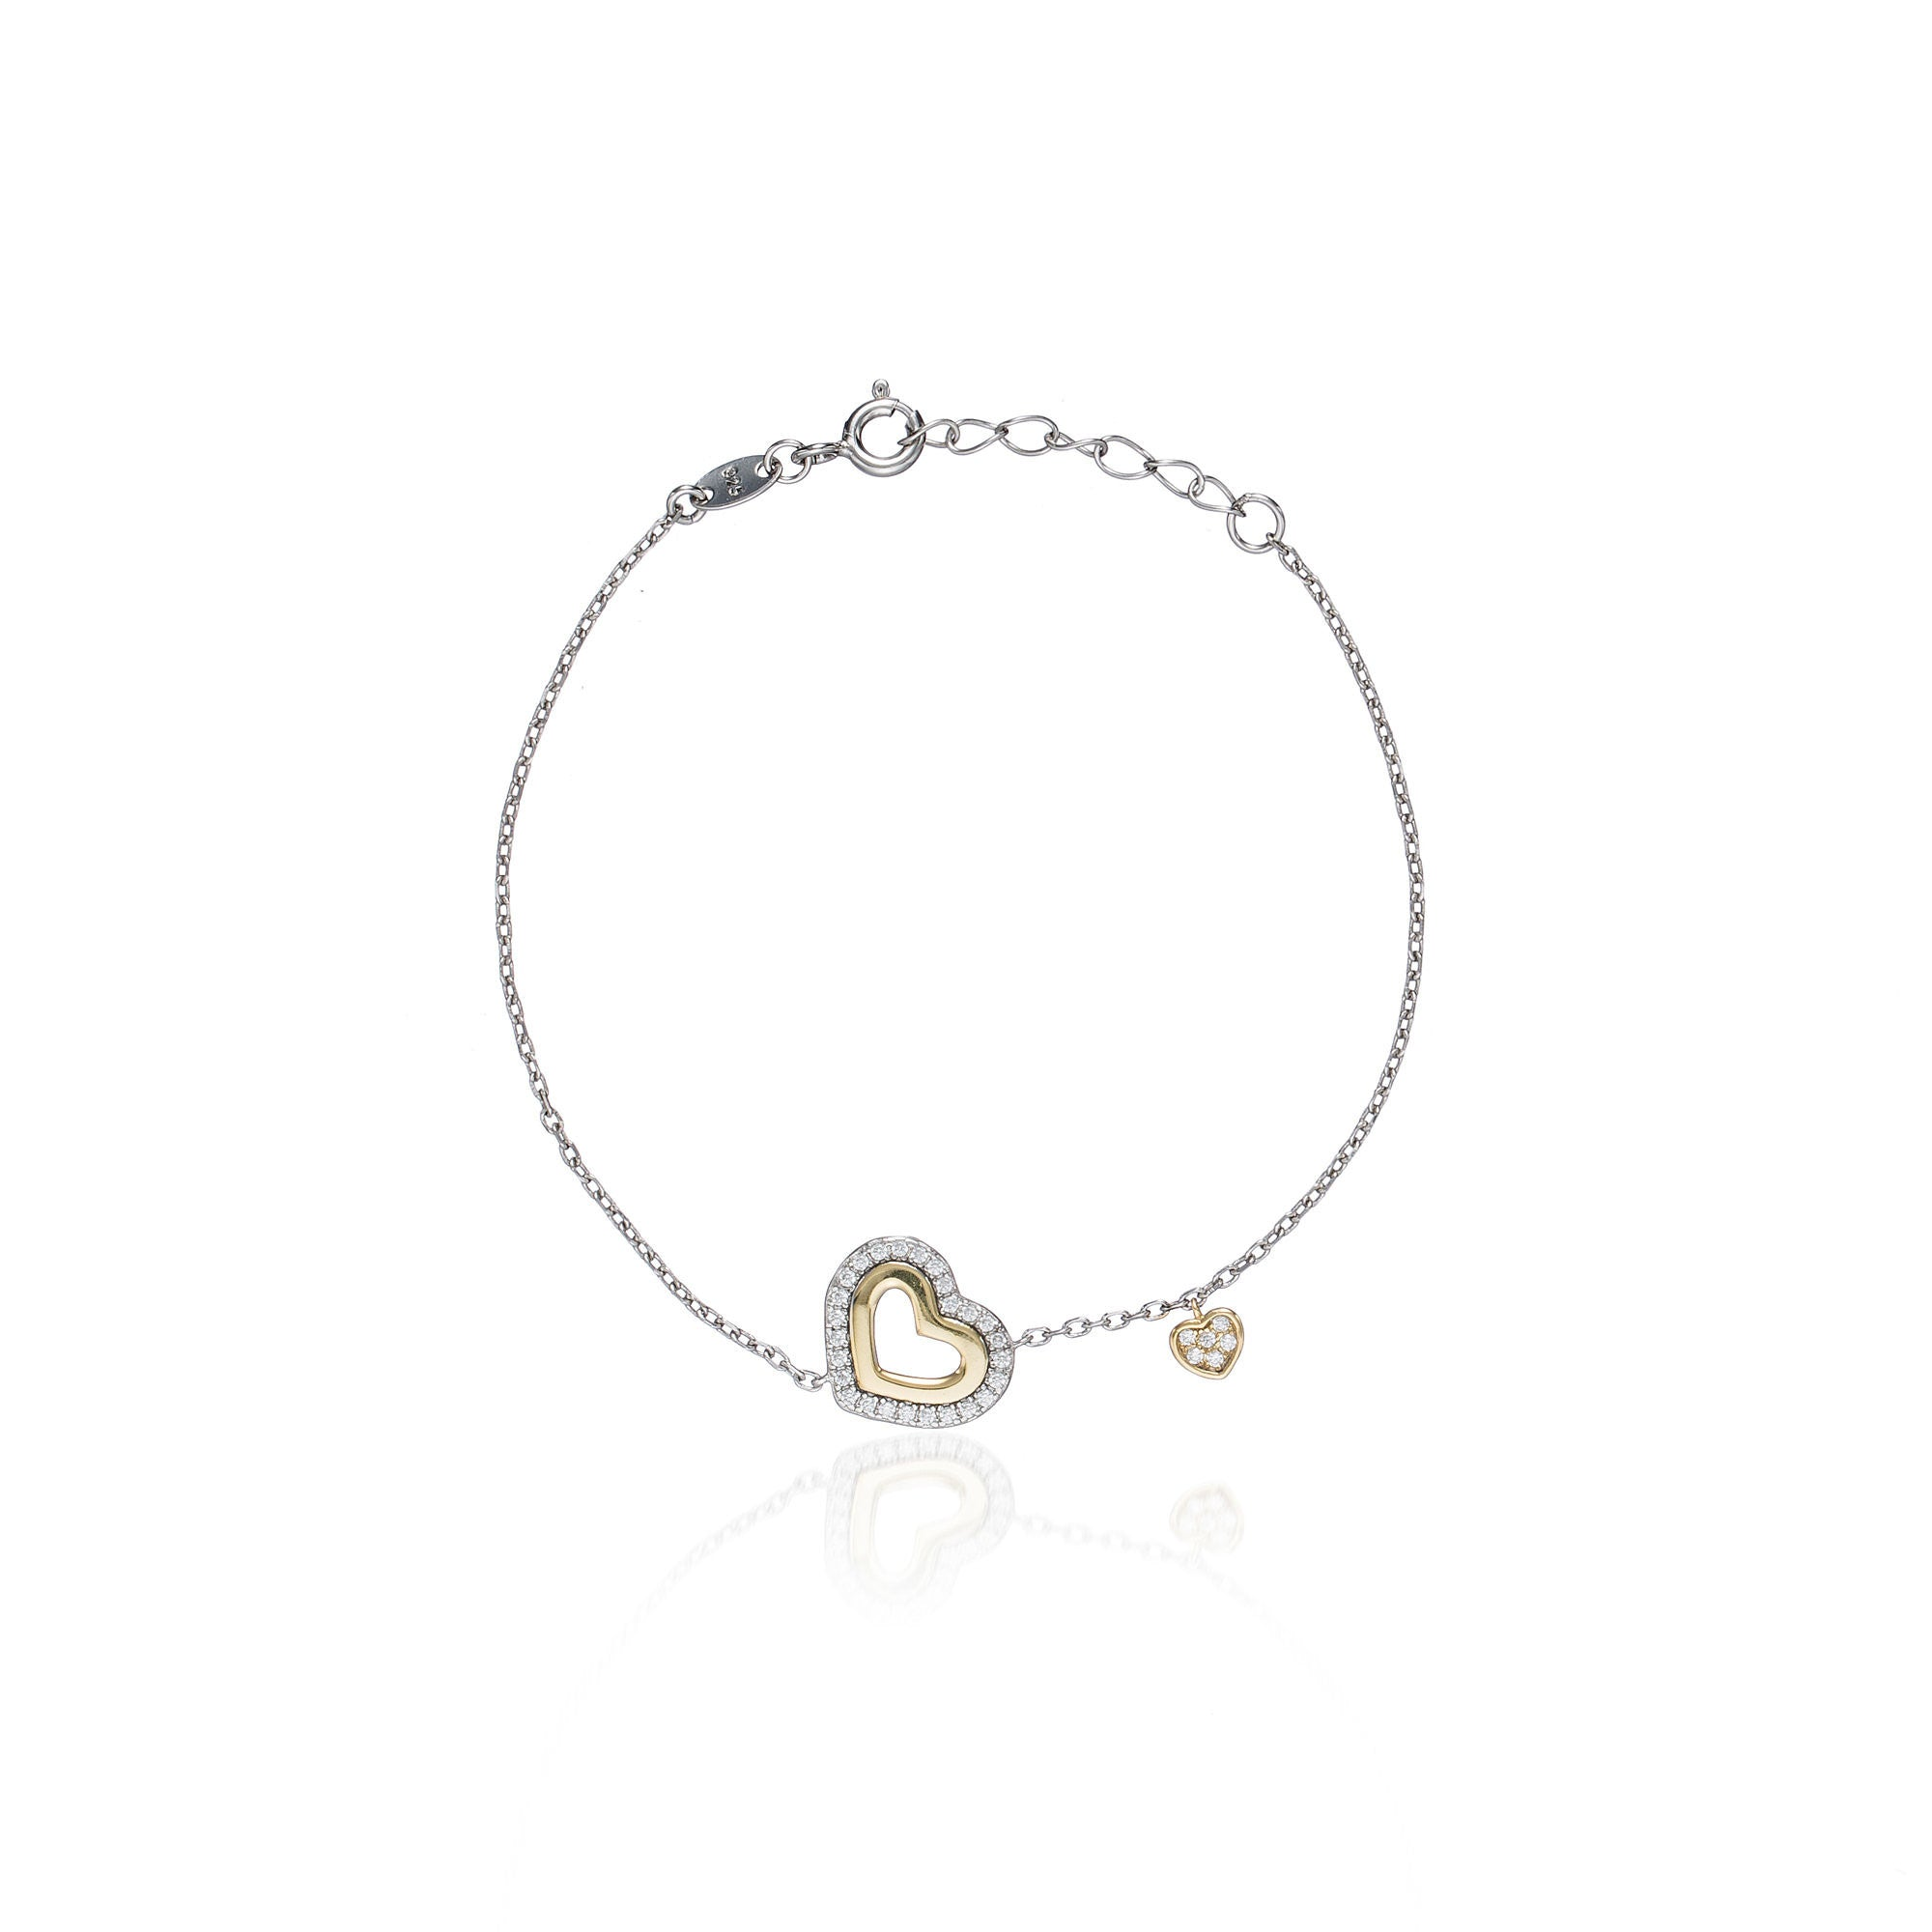 alkemistry rose bracelet heart gold shop by diamond kismet the share milka